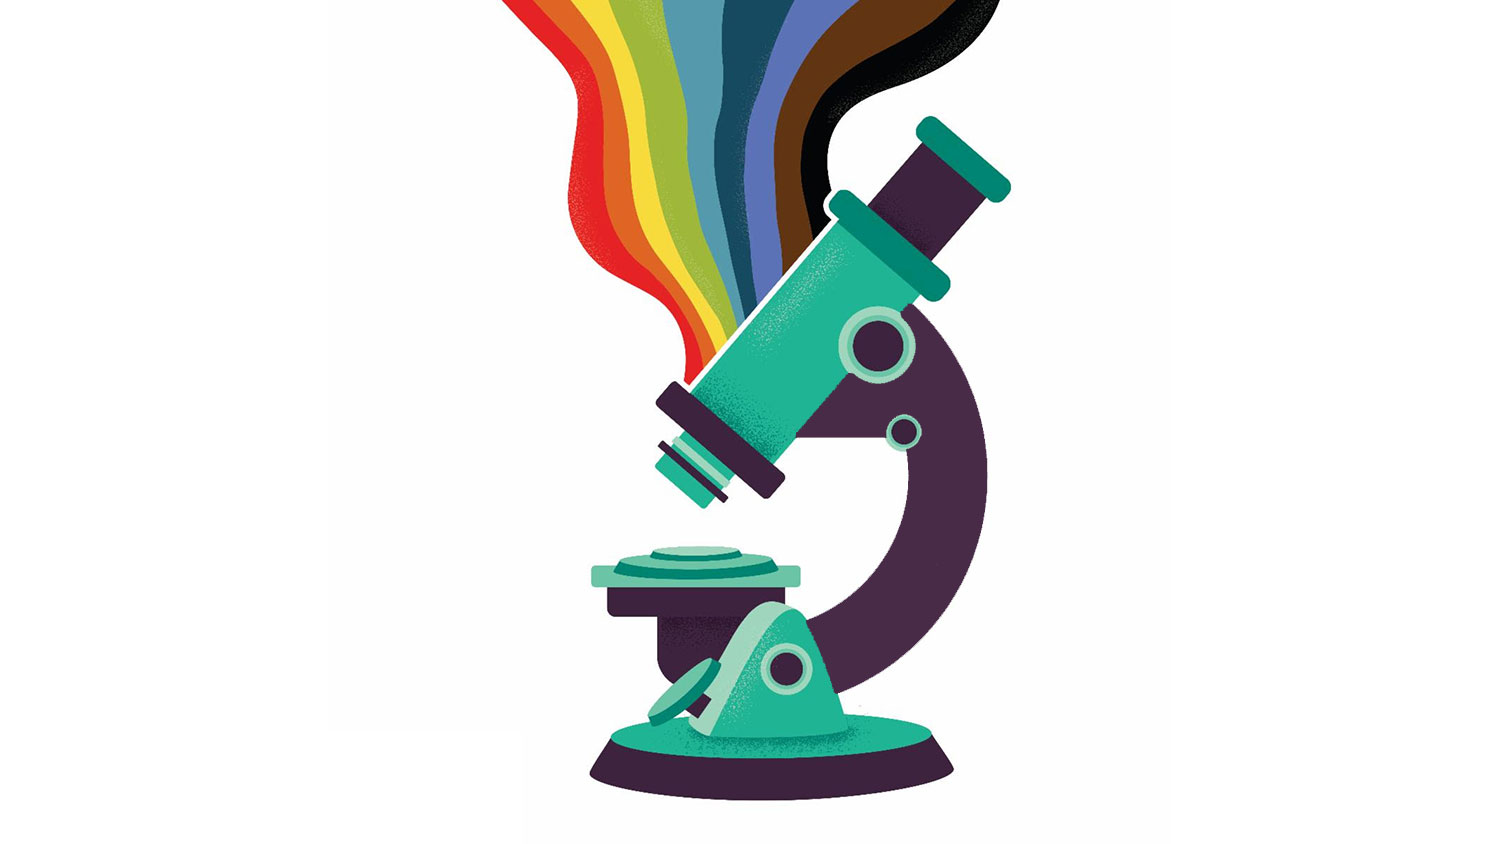 Microscope with LGBTQ+ rainbow